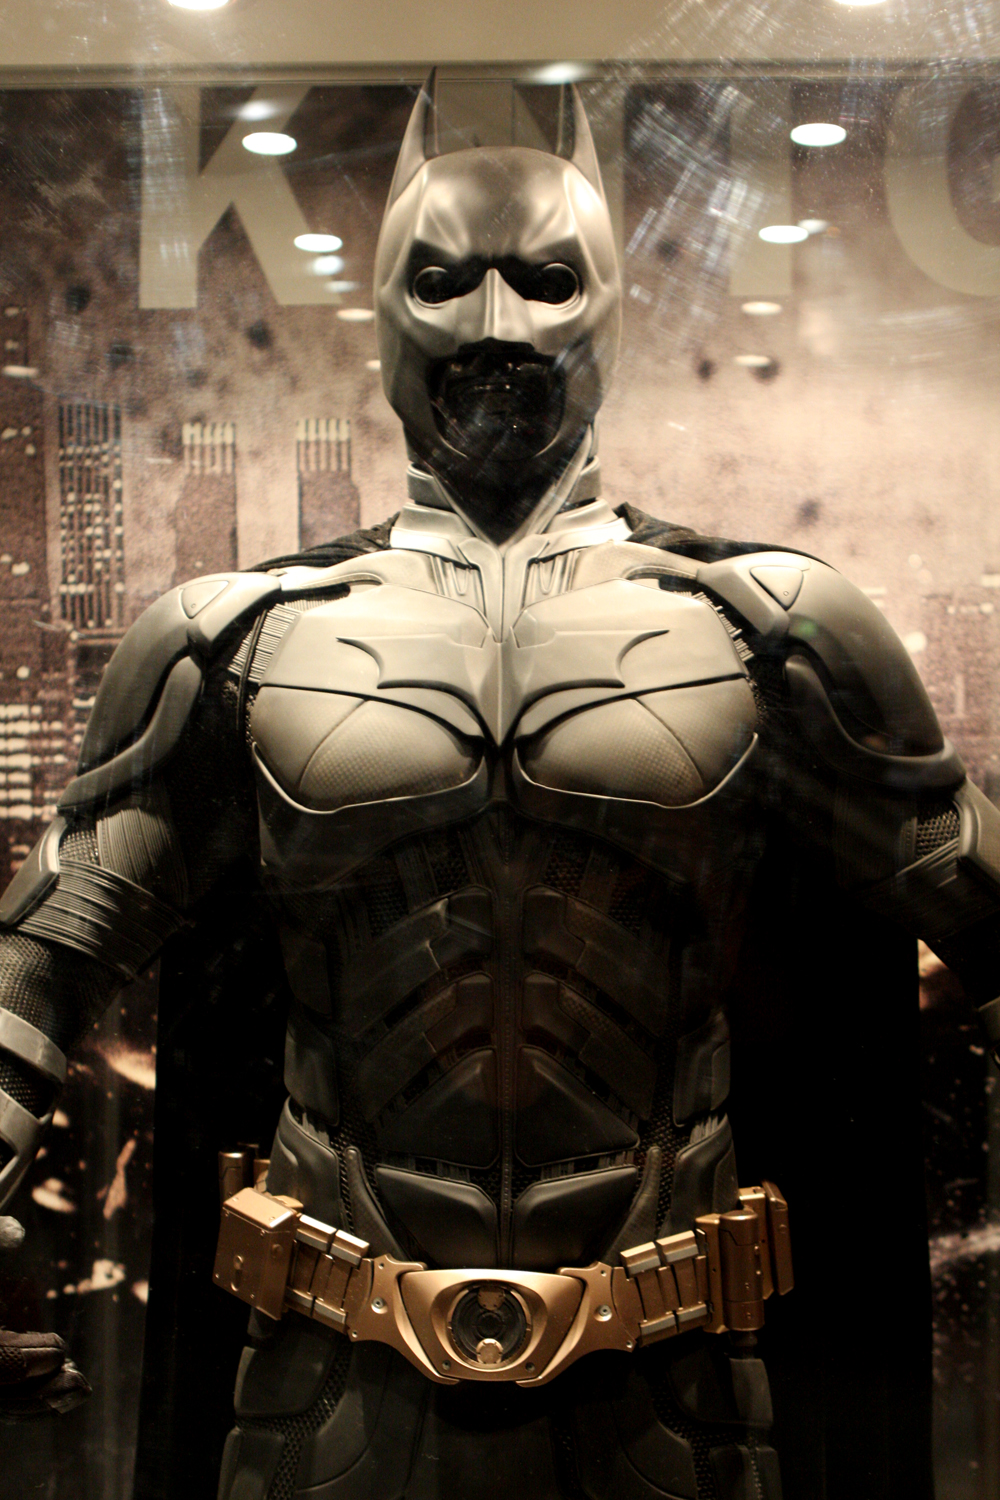 Batman (The Dark Knight)